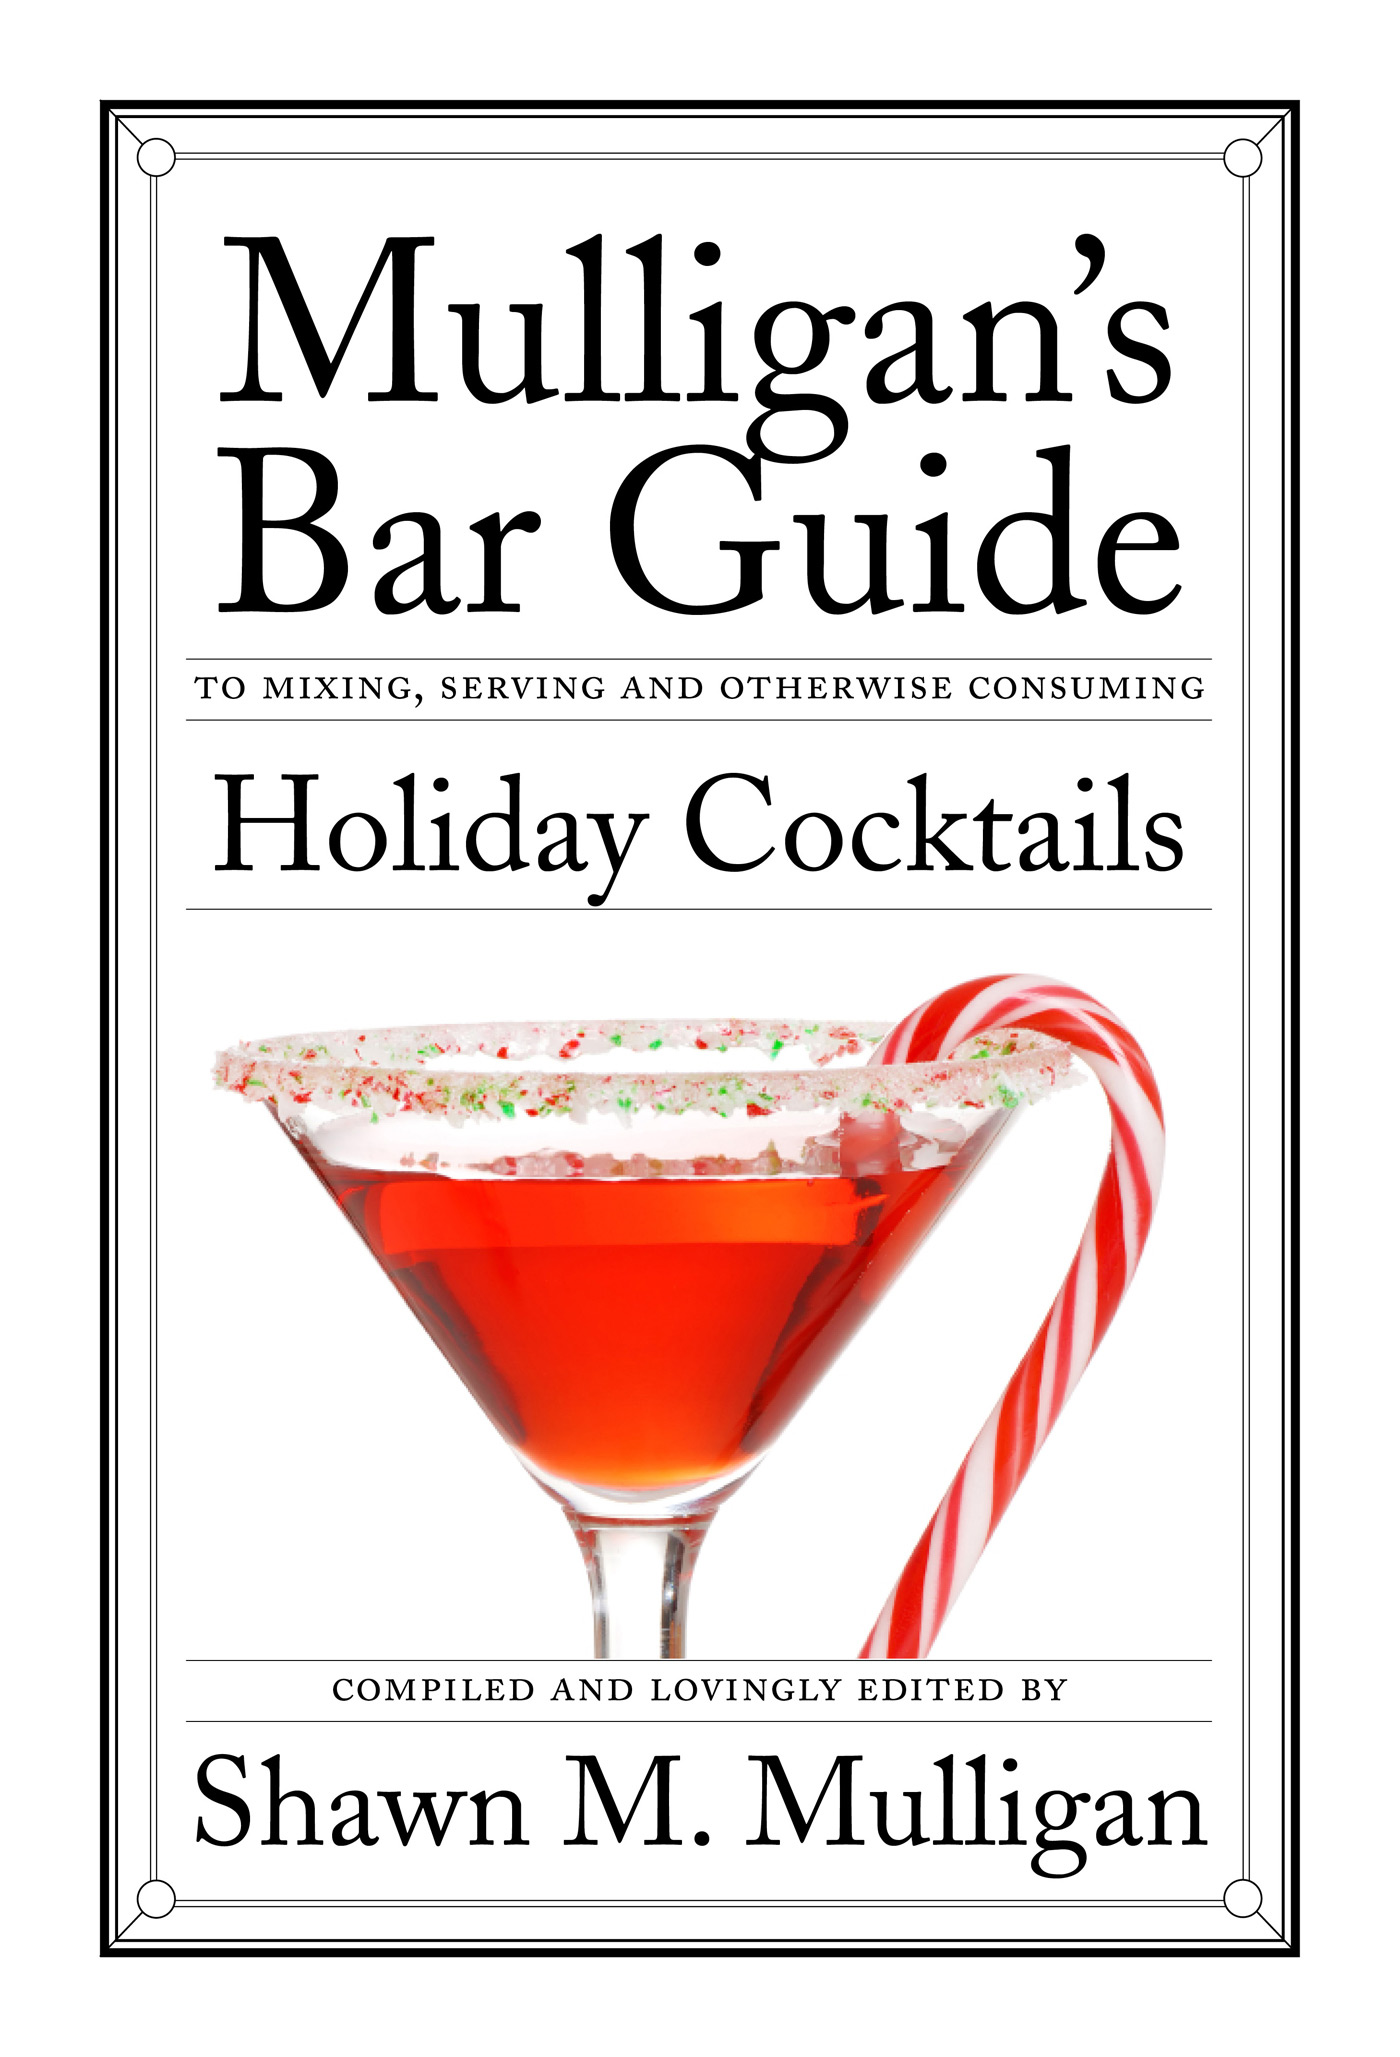 Holiday Cocktails By: Shawn M. Mulligan